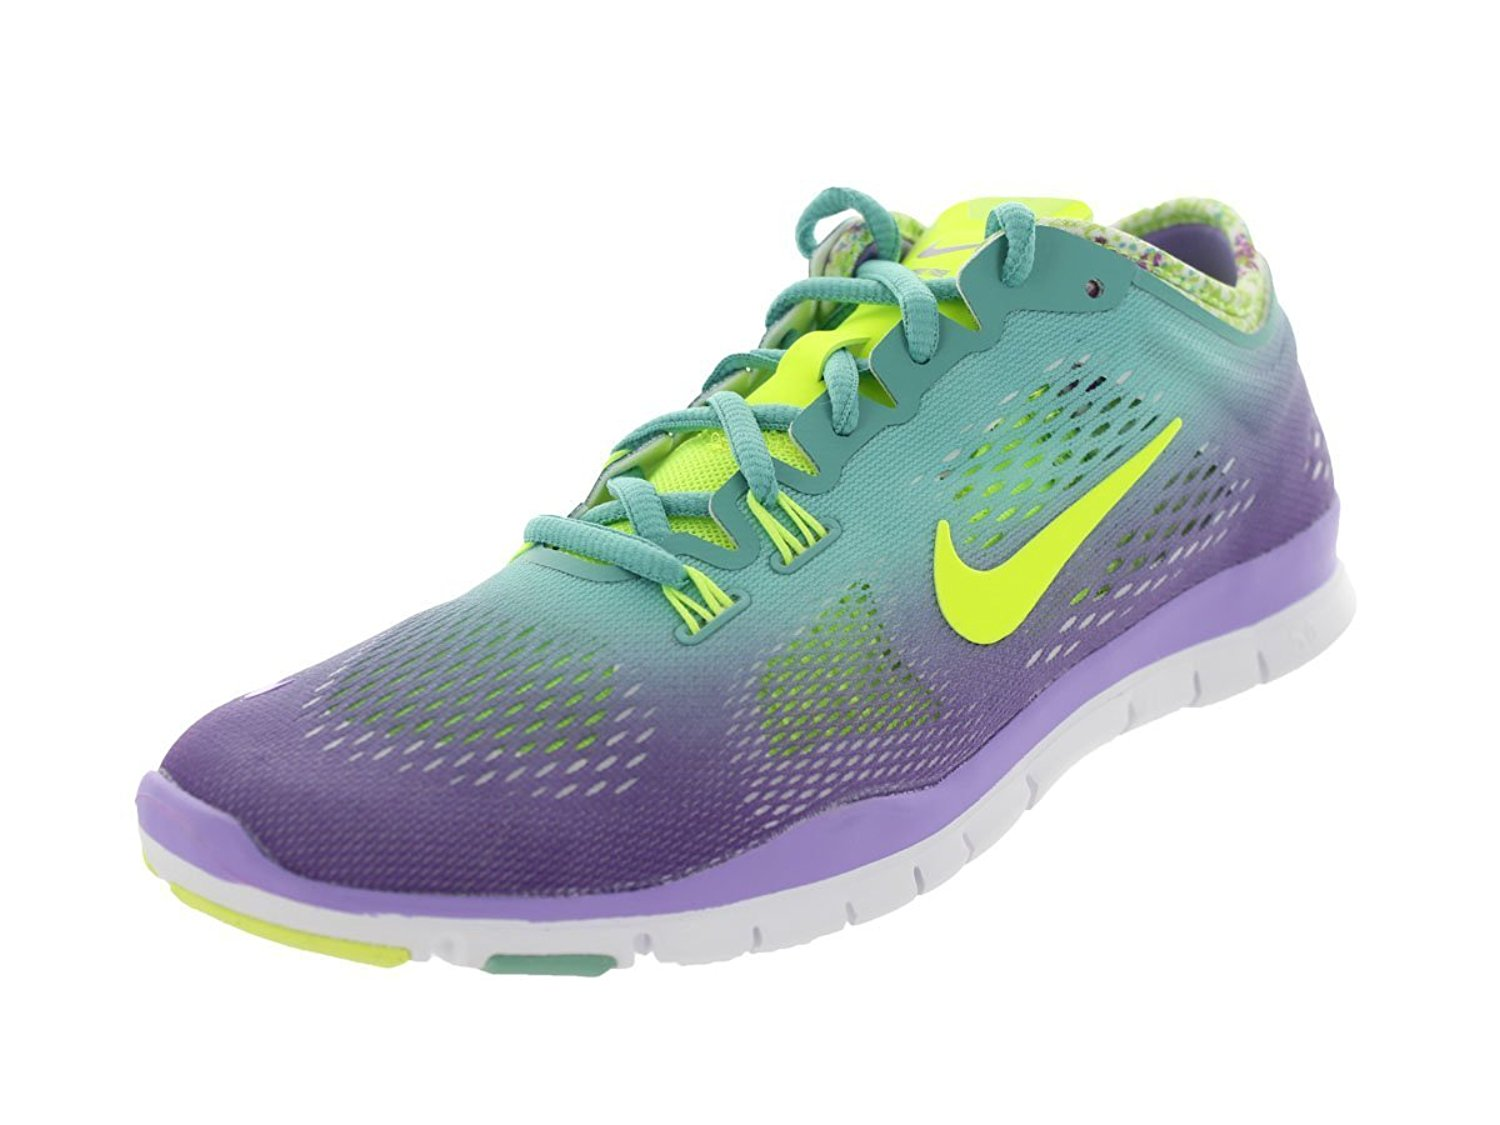 b9efdcce5a84 Get Quotations · NIKE Free 5.0 TR Fit Fitness Women s Training Shoes